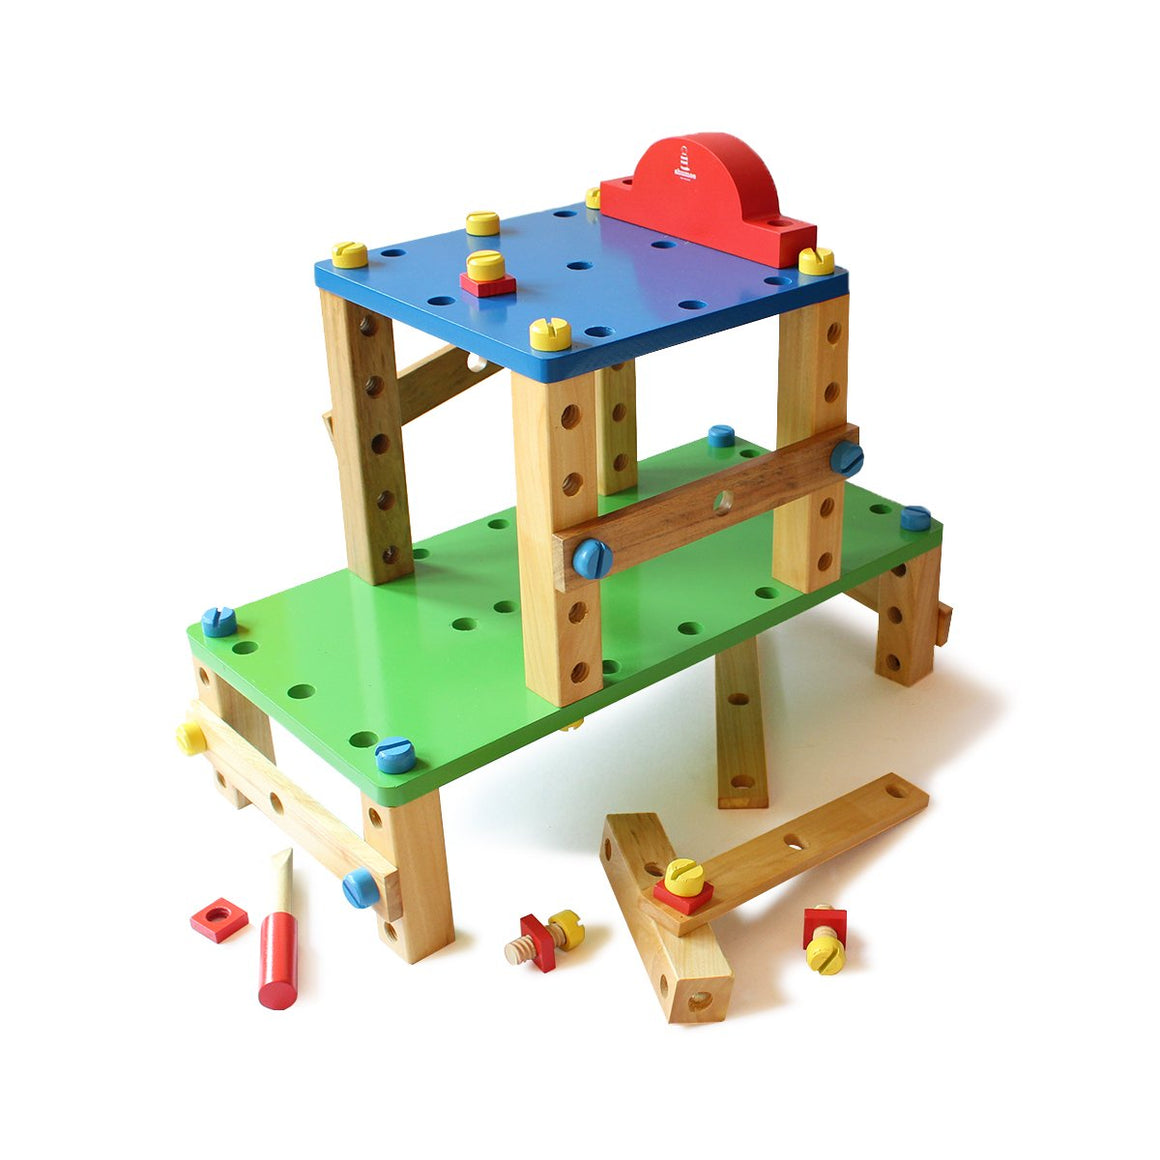 Educational Wooden Construction Toy for Kids | Free Shipping - Shumee